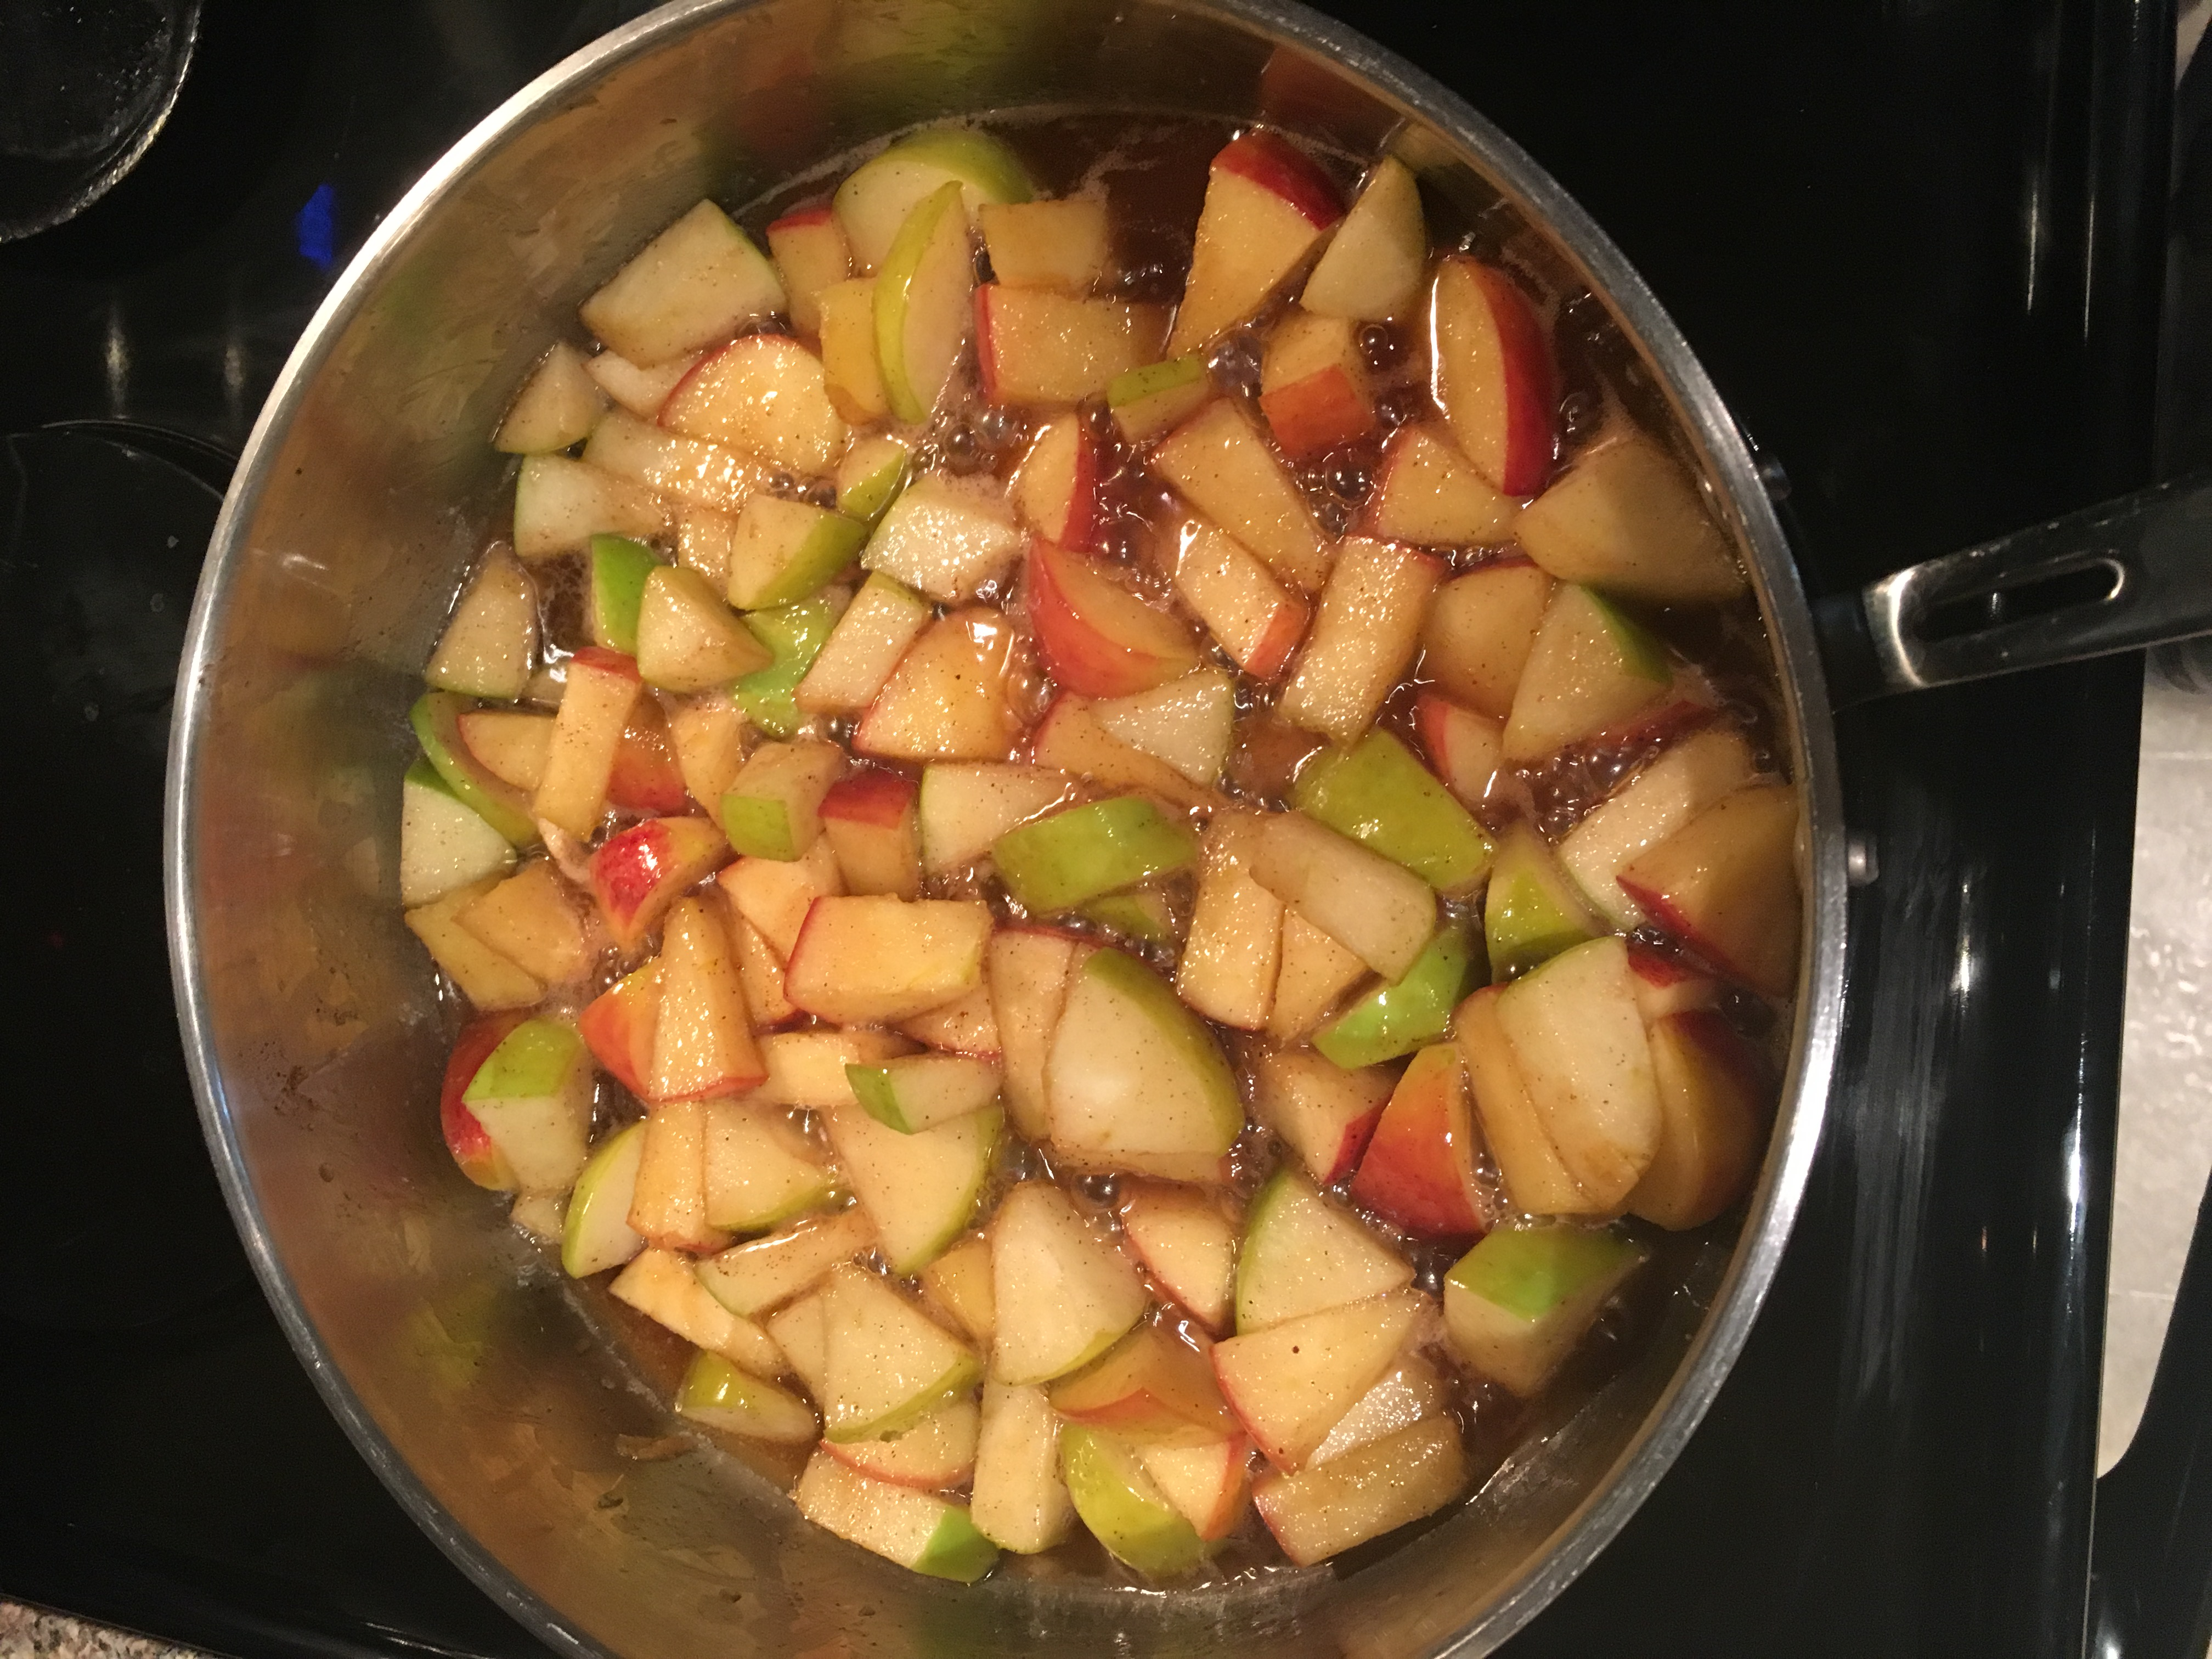 Skillet Apples with Cinnamon